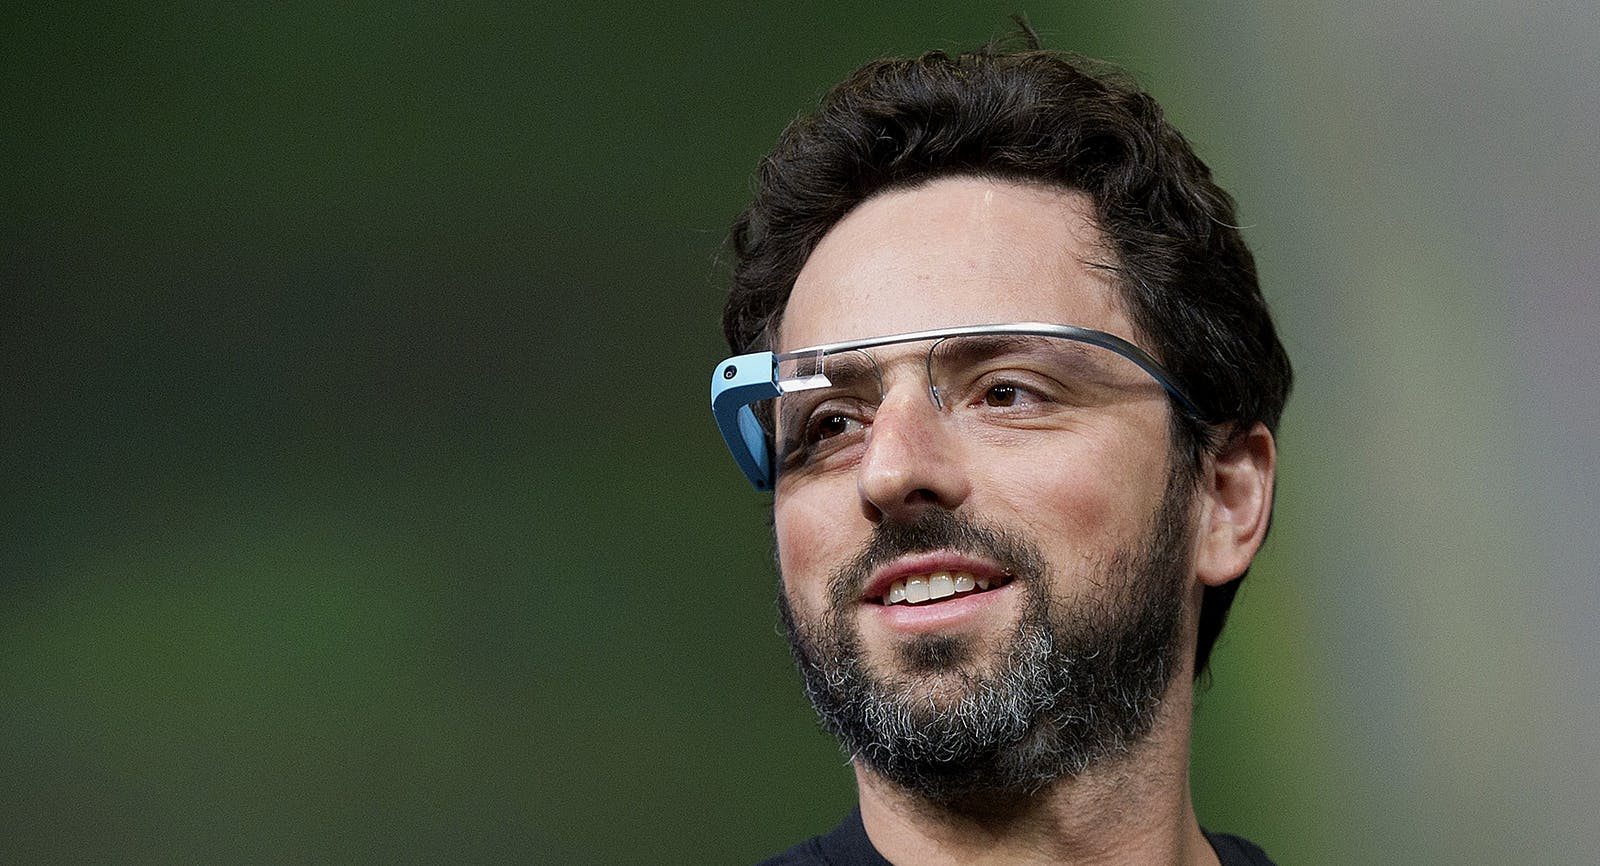 Russian-born Sergey Brin, a Google co-founder. Photo by Bloomberg.